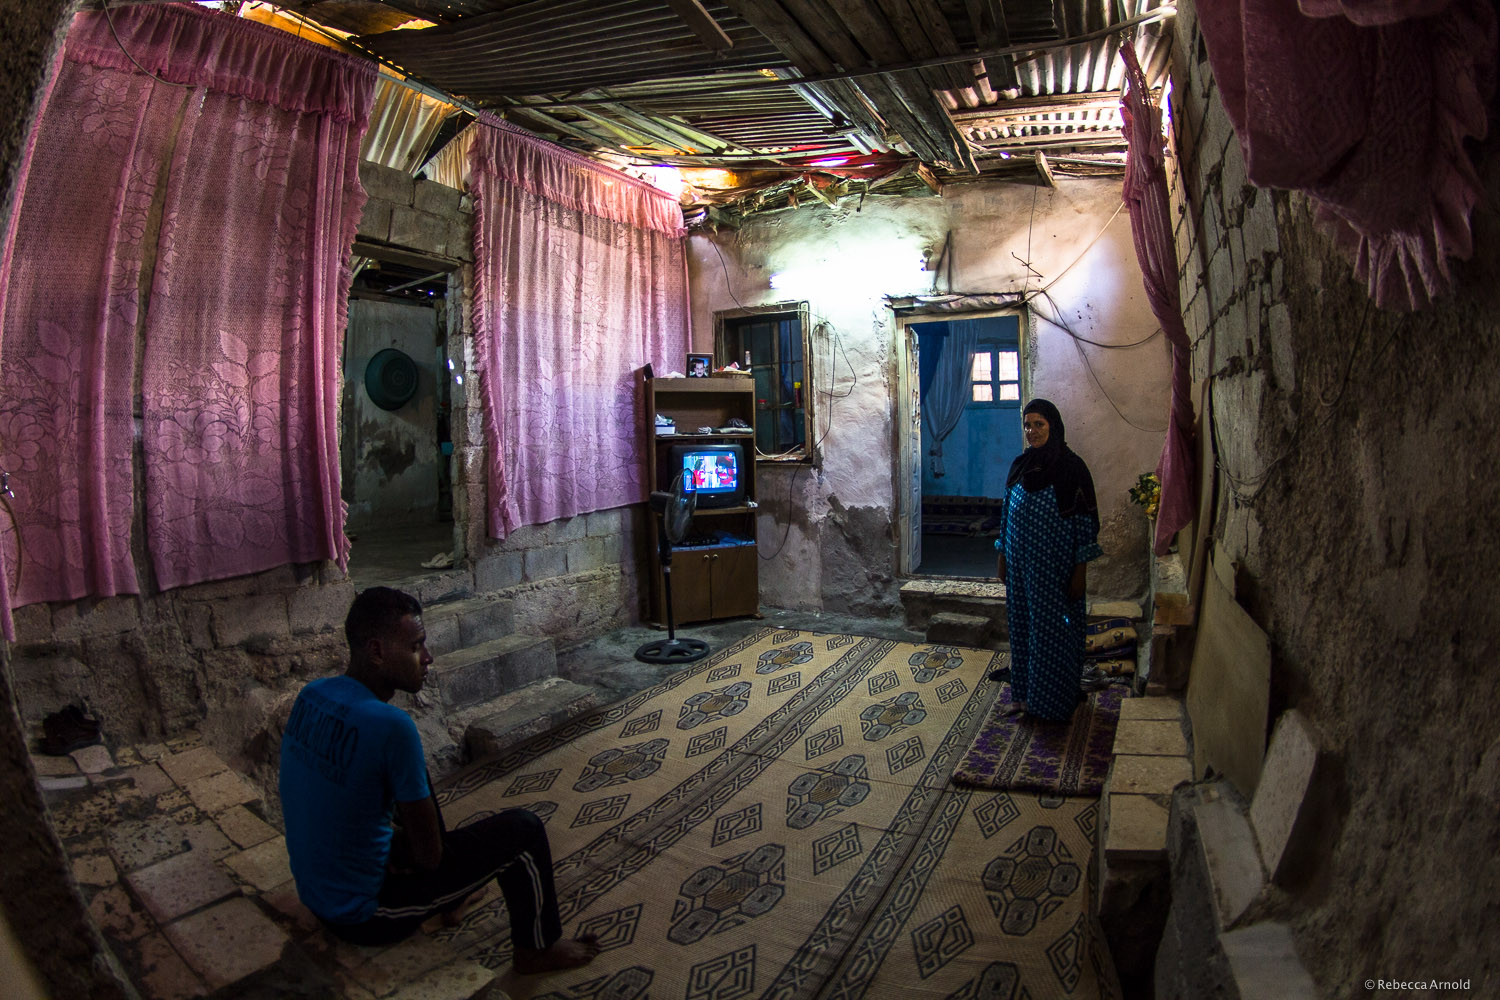 Syrian refugee mother and son, making a home in abandoned house with no roof.Zarqa, Jordan